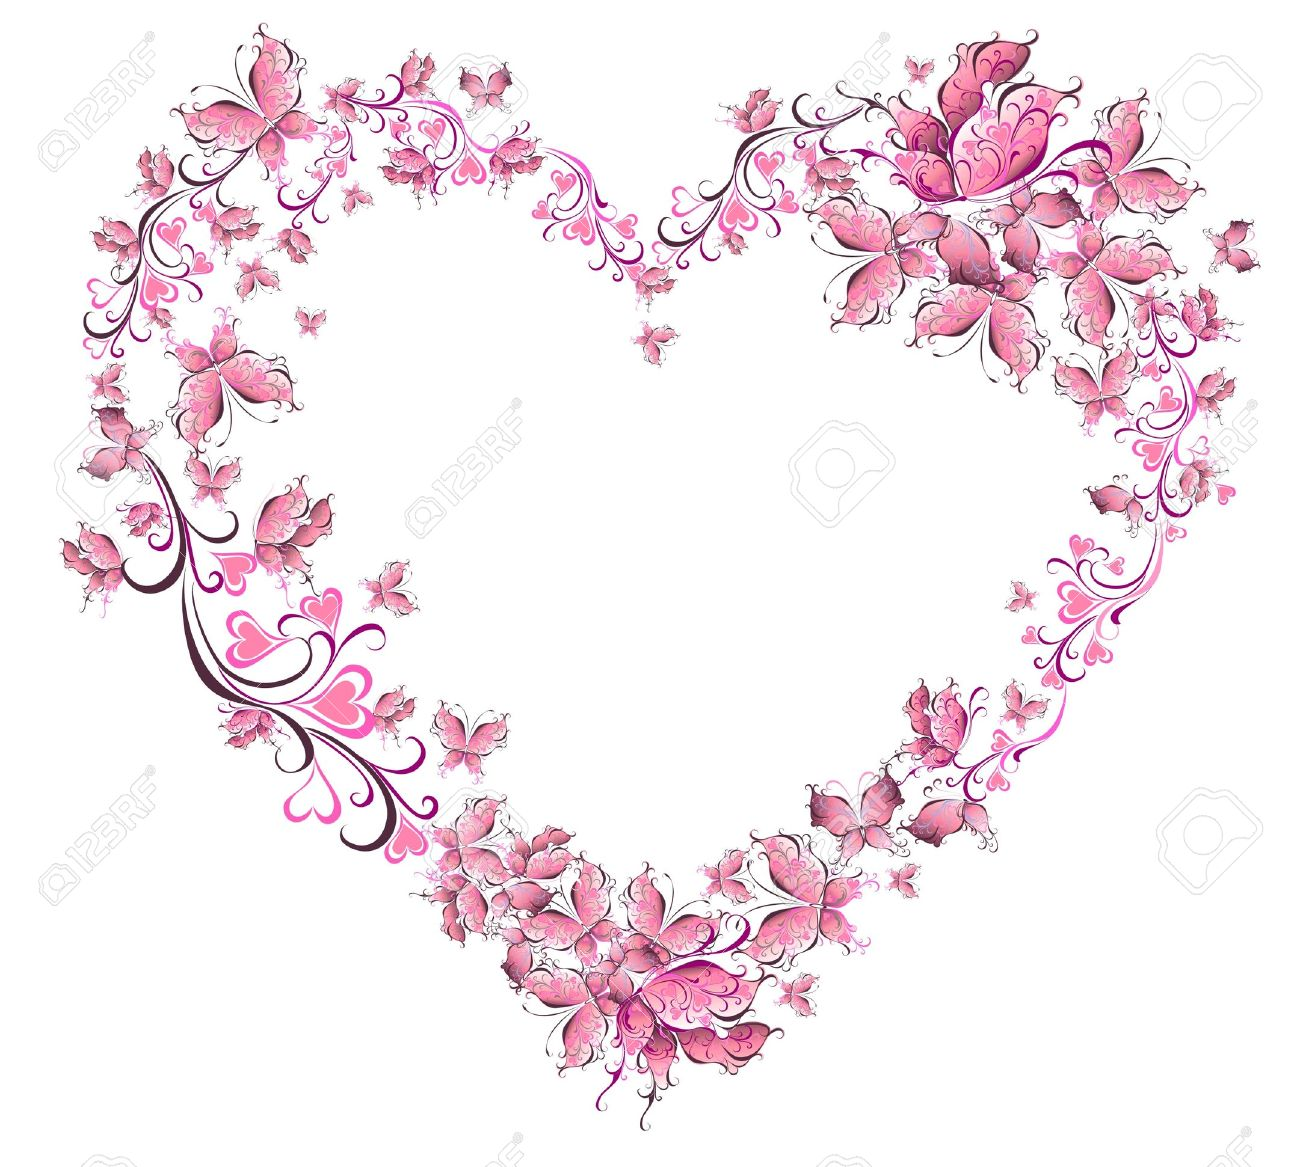 Floral Love Shape Heart Of Butterflies Valentine Day Card